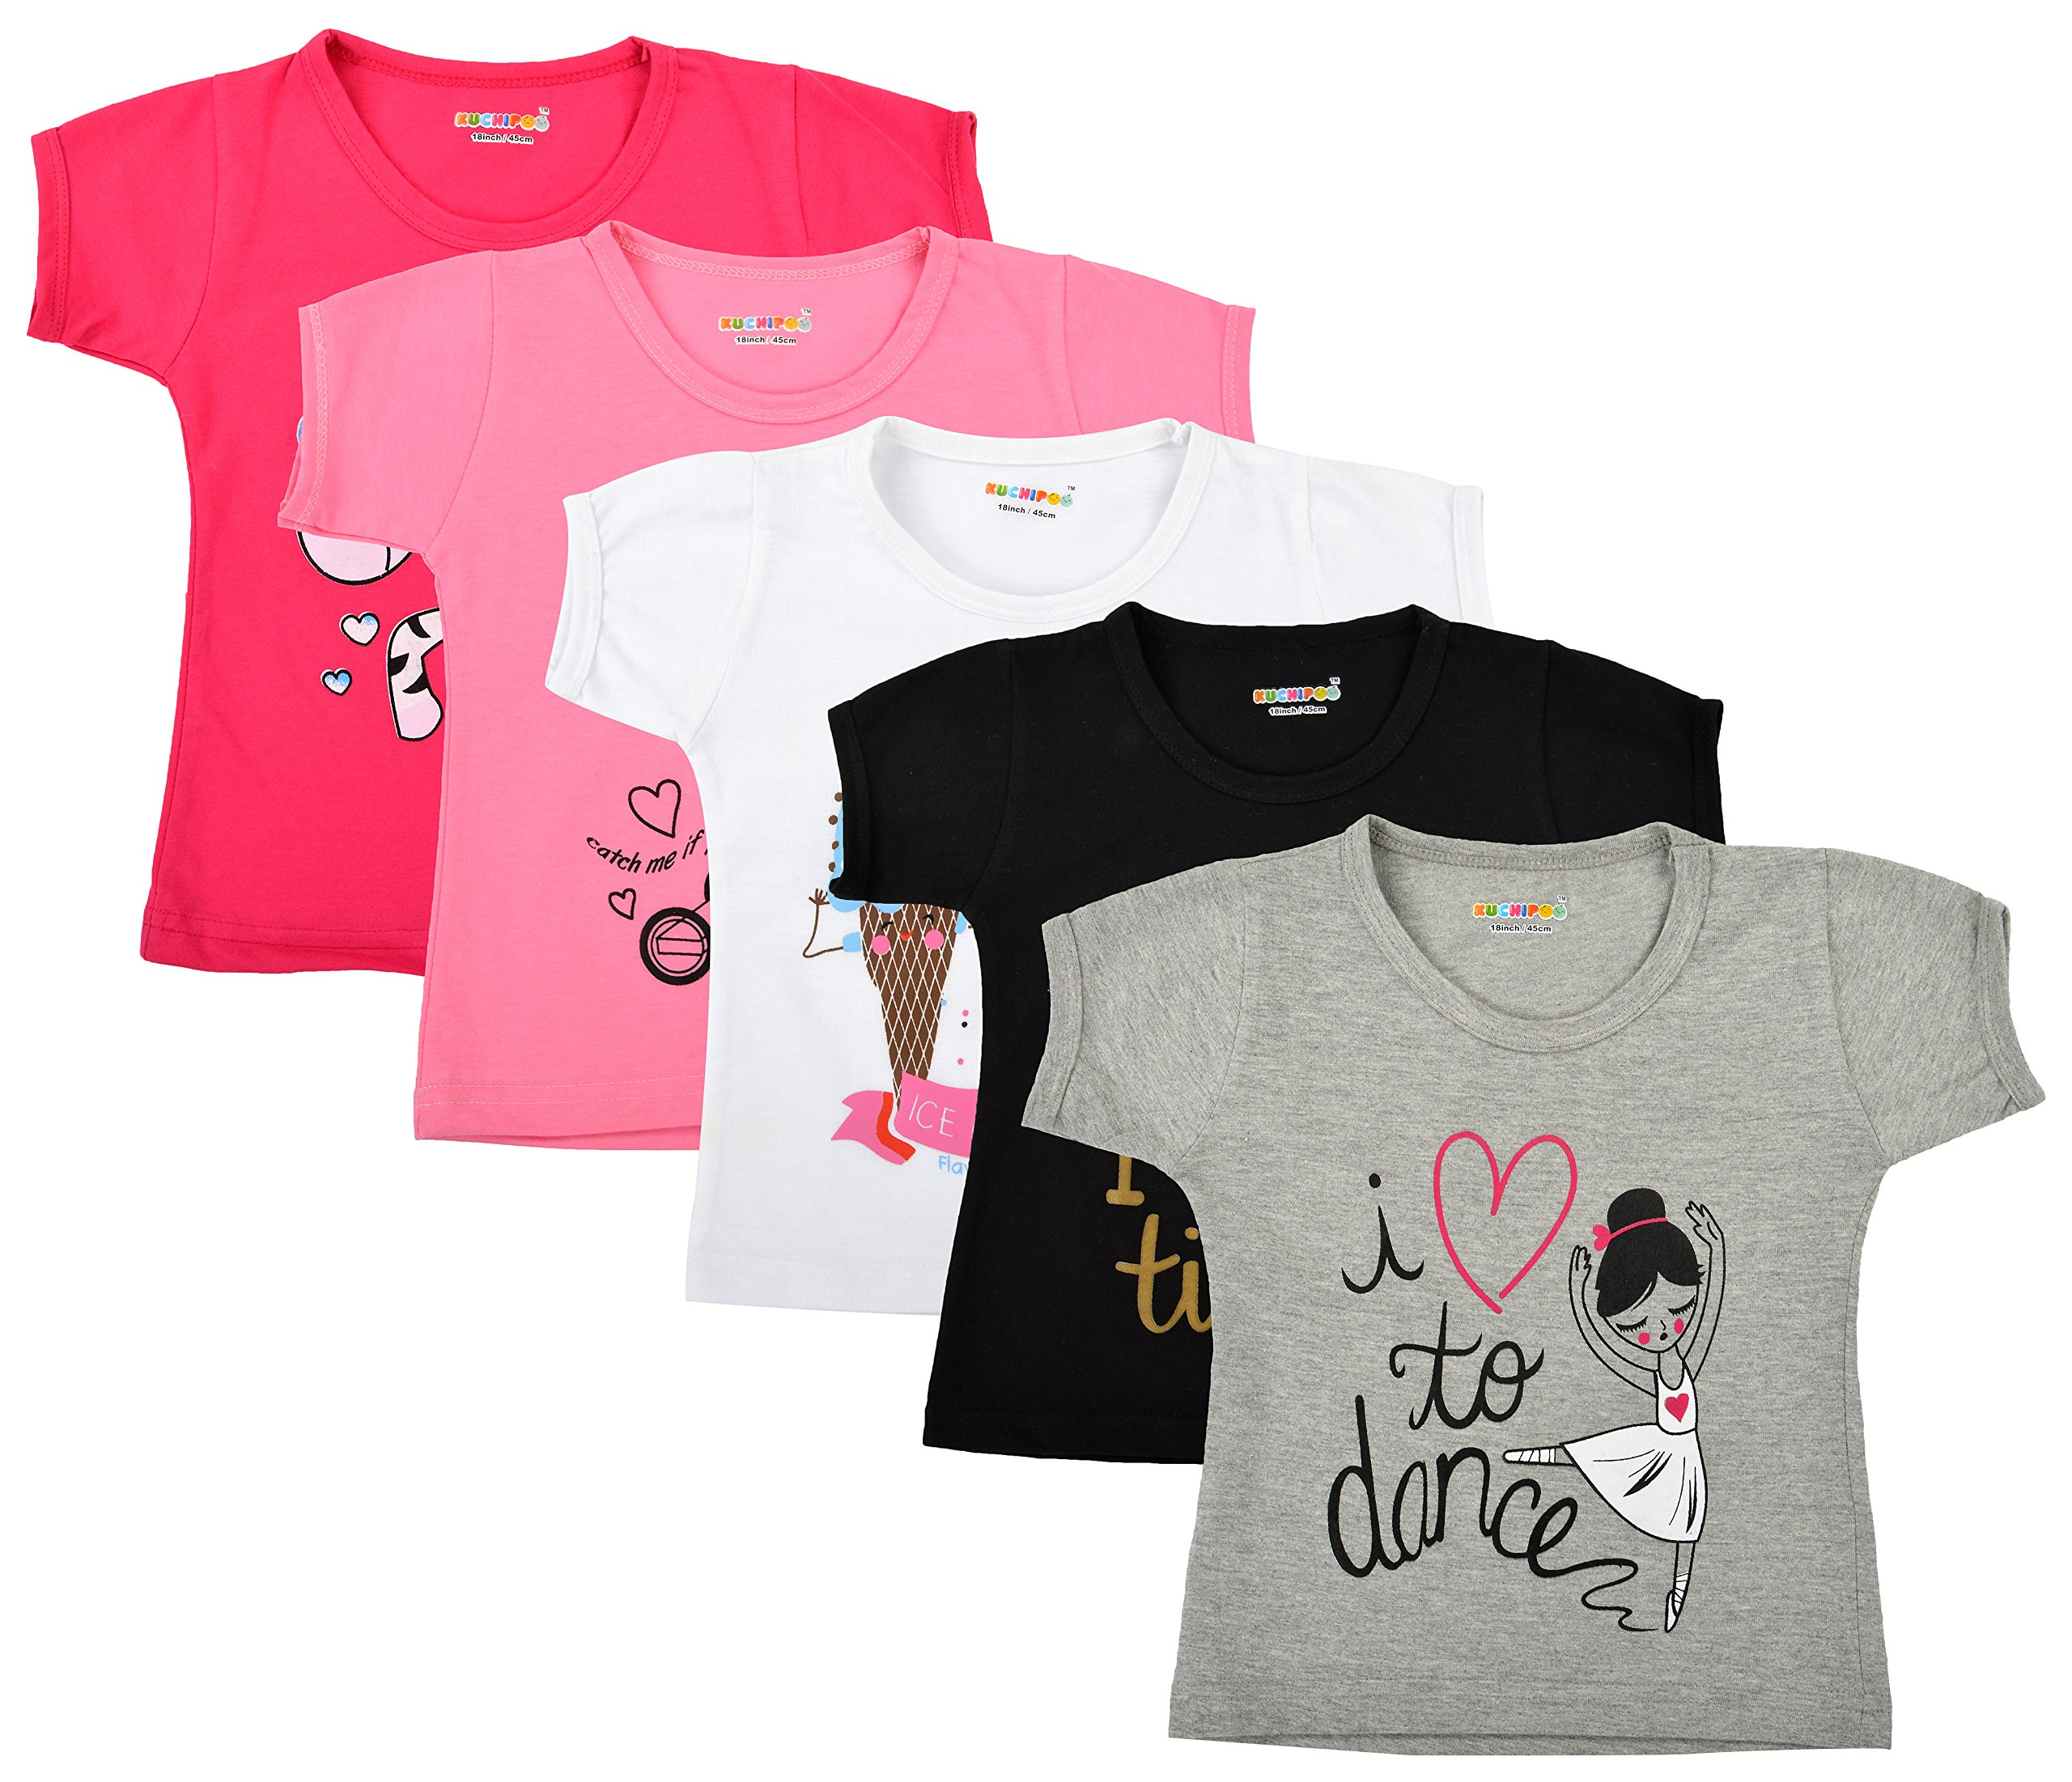 Kuchipoo Girl's Cotton Regular Fit T-Shirt - Pack of 5 product image